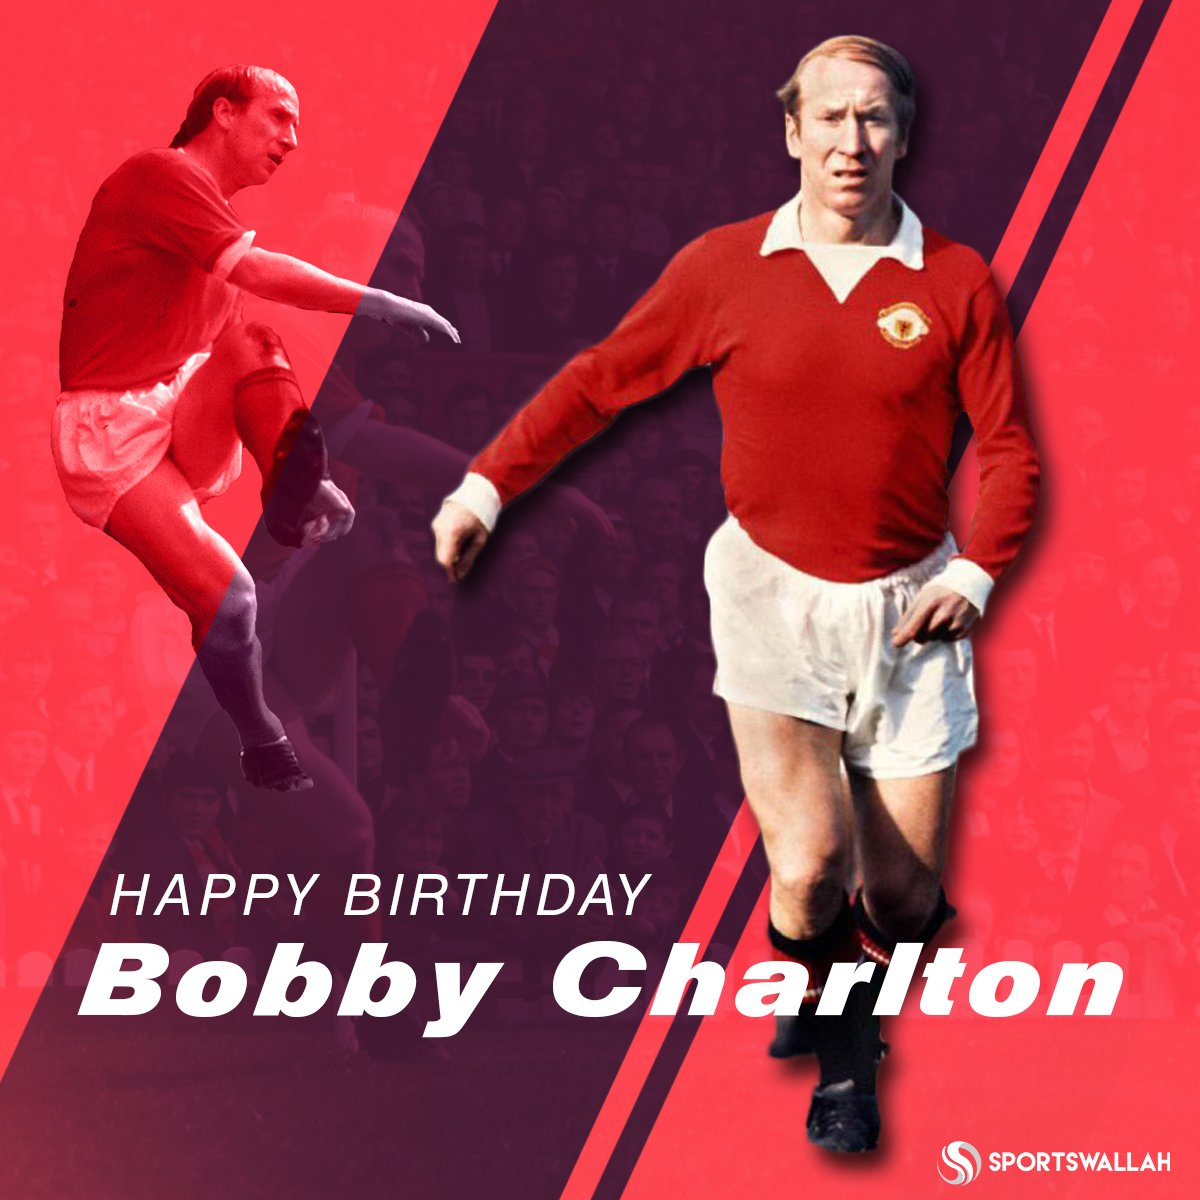 12 trophies 249 goals  758 games Happy birthday to one of greatest legends, Sir Bobby Charlton.